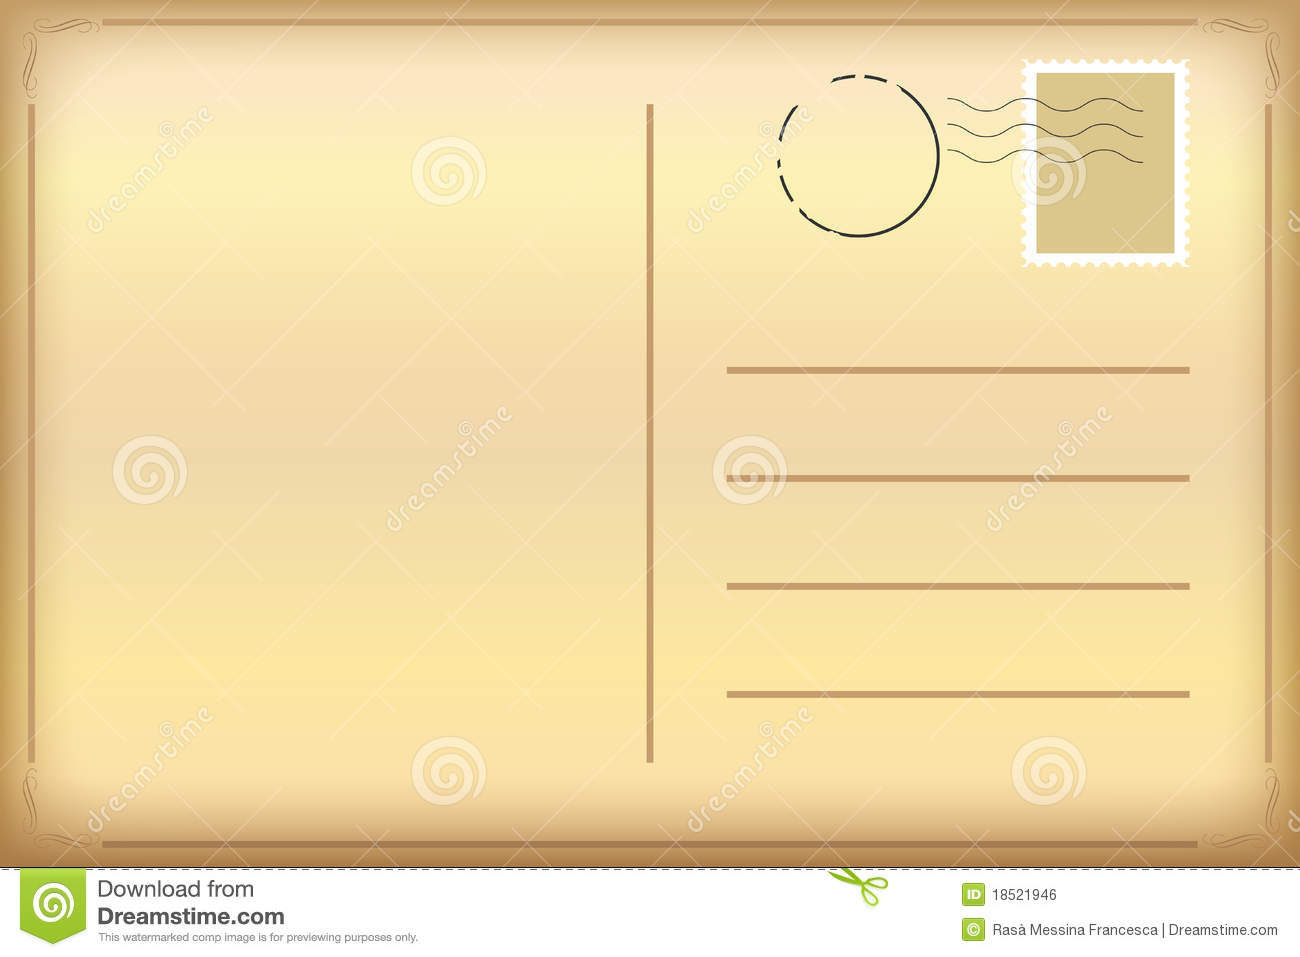 Old postcard stock vector. Illustration of brown, retro ...